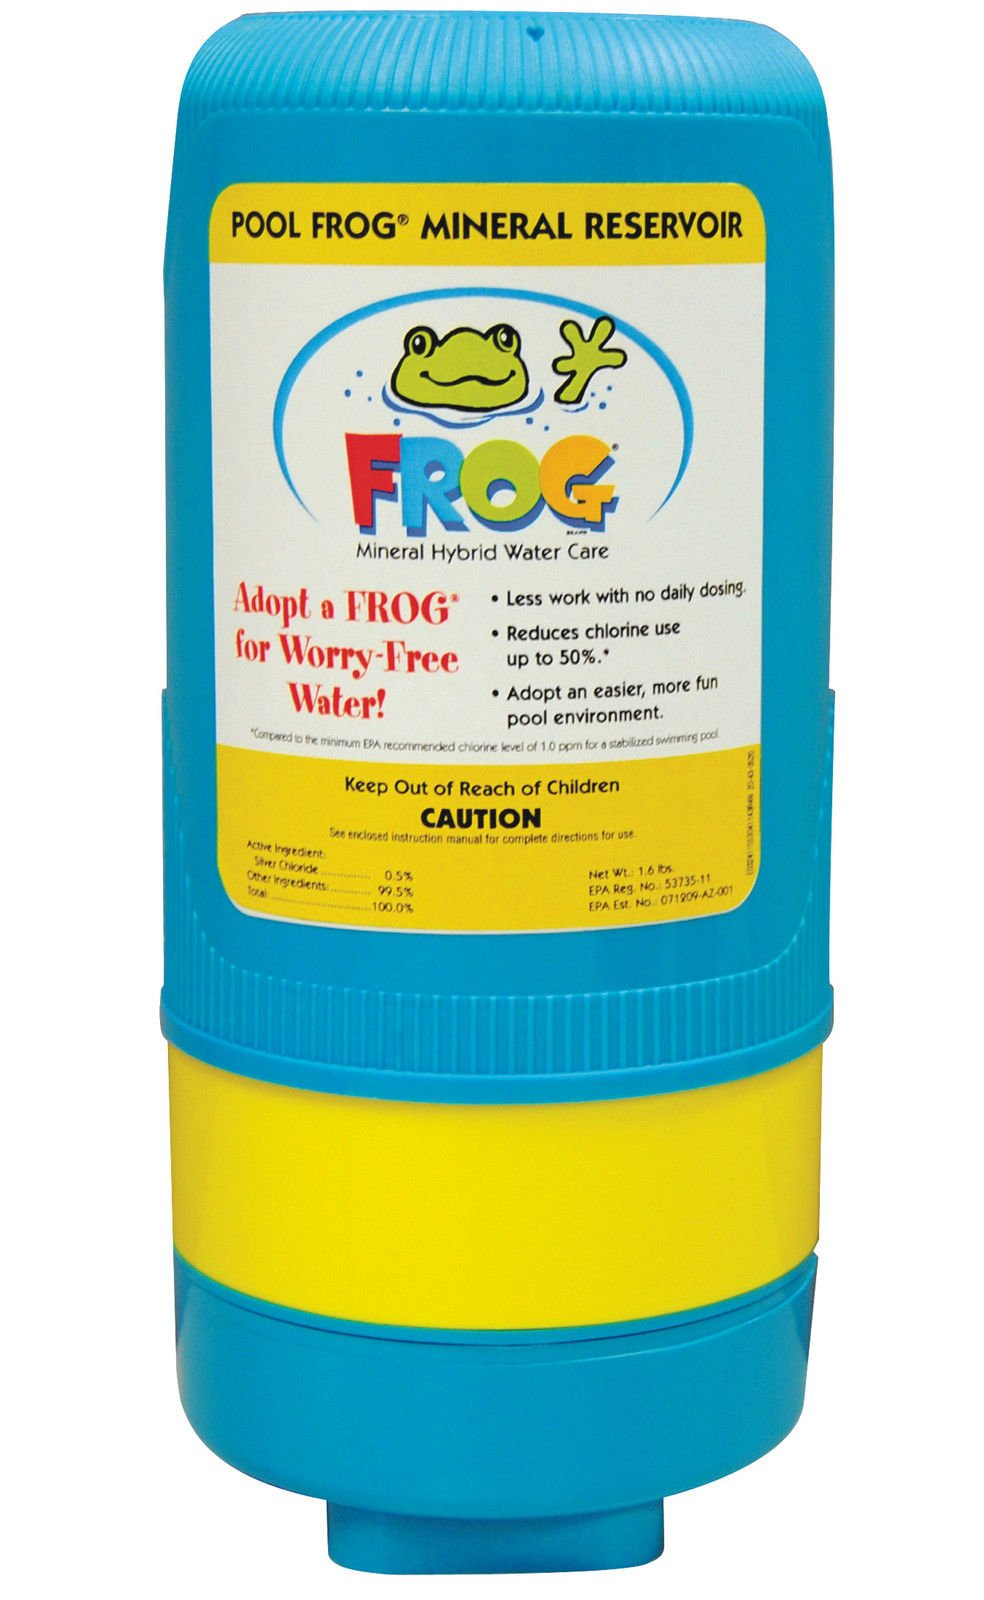 King Technology 5400 Series Swimming Pool Frog Mineral Cartridge - Up to 40,000 Gallons by King Technology